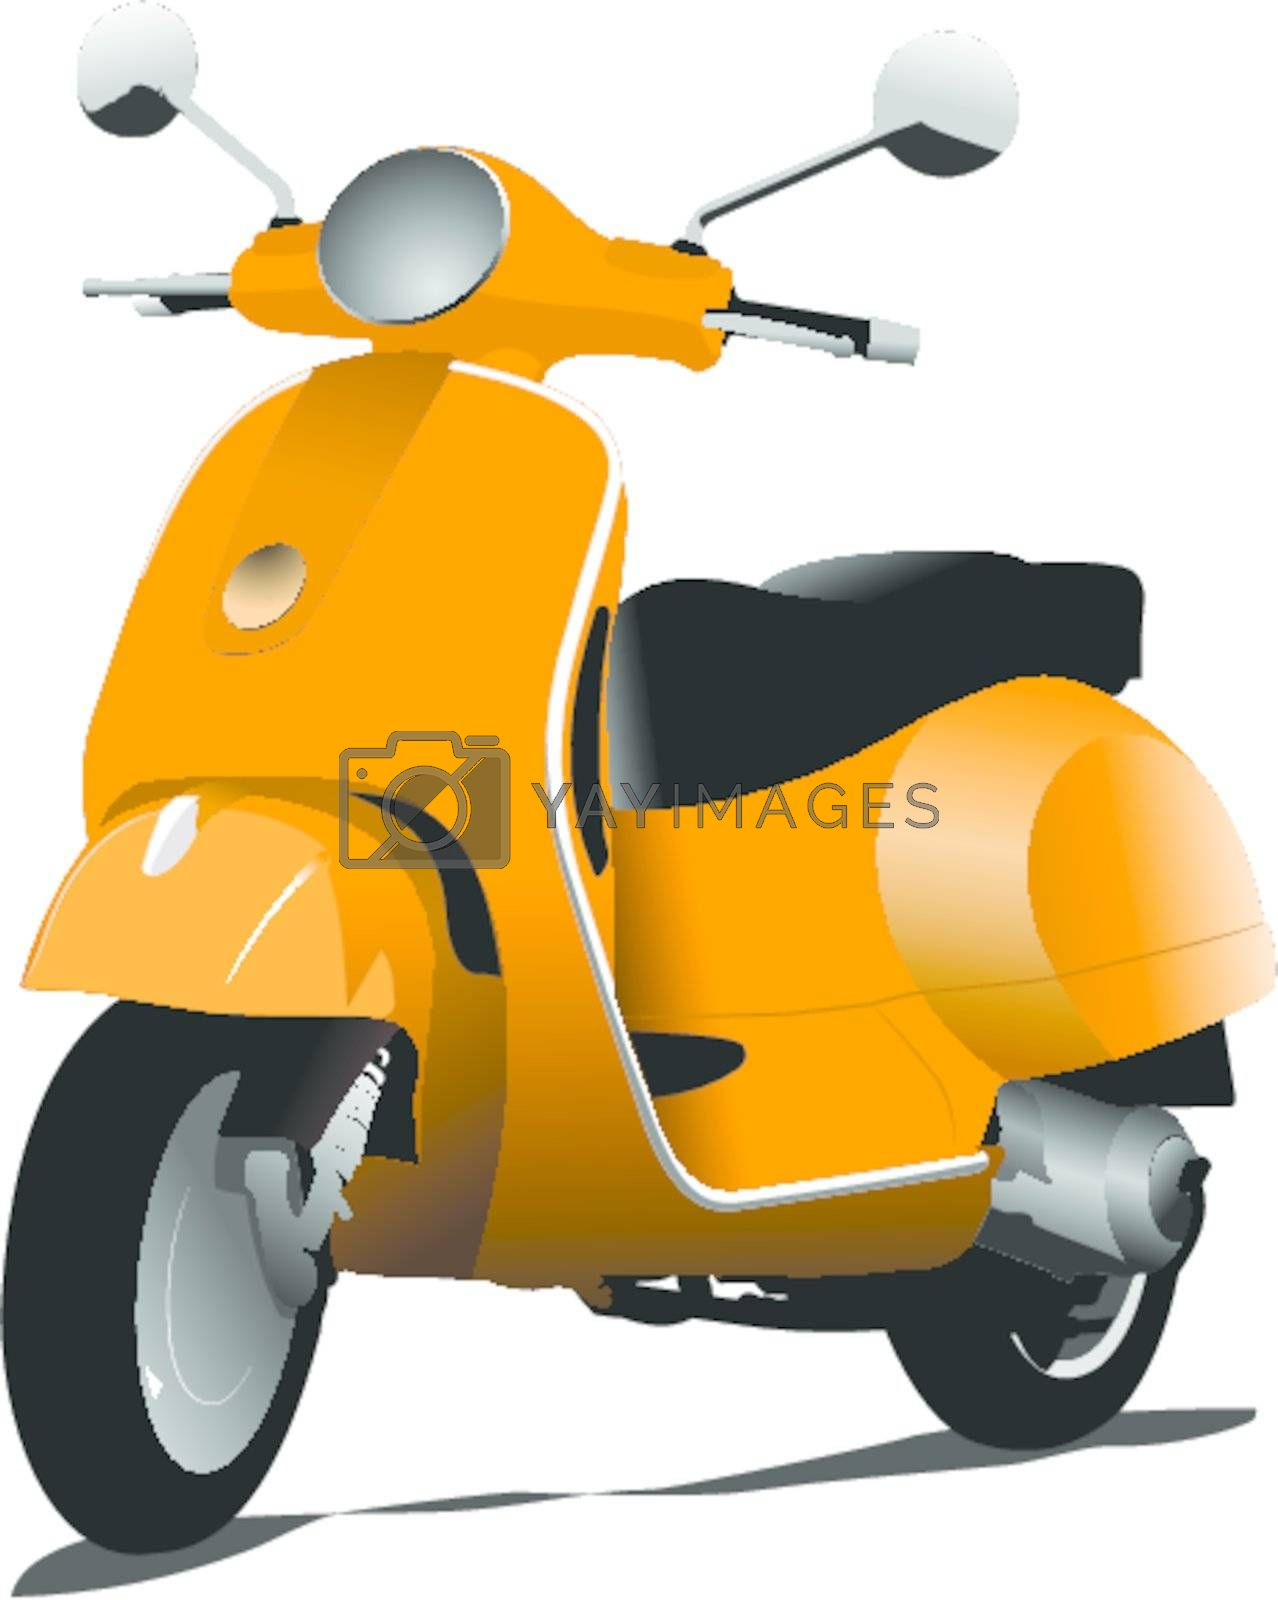 orange city scooter vector illustration royalty free stock image stock photos royalty free images vectors footage yayimages yayimages